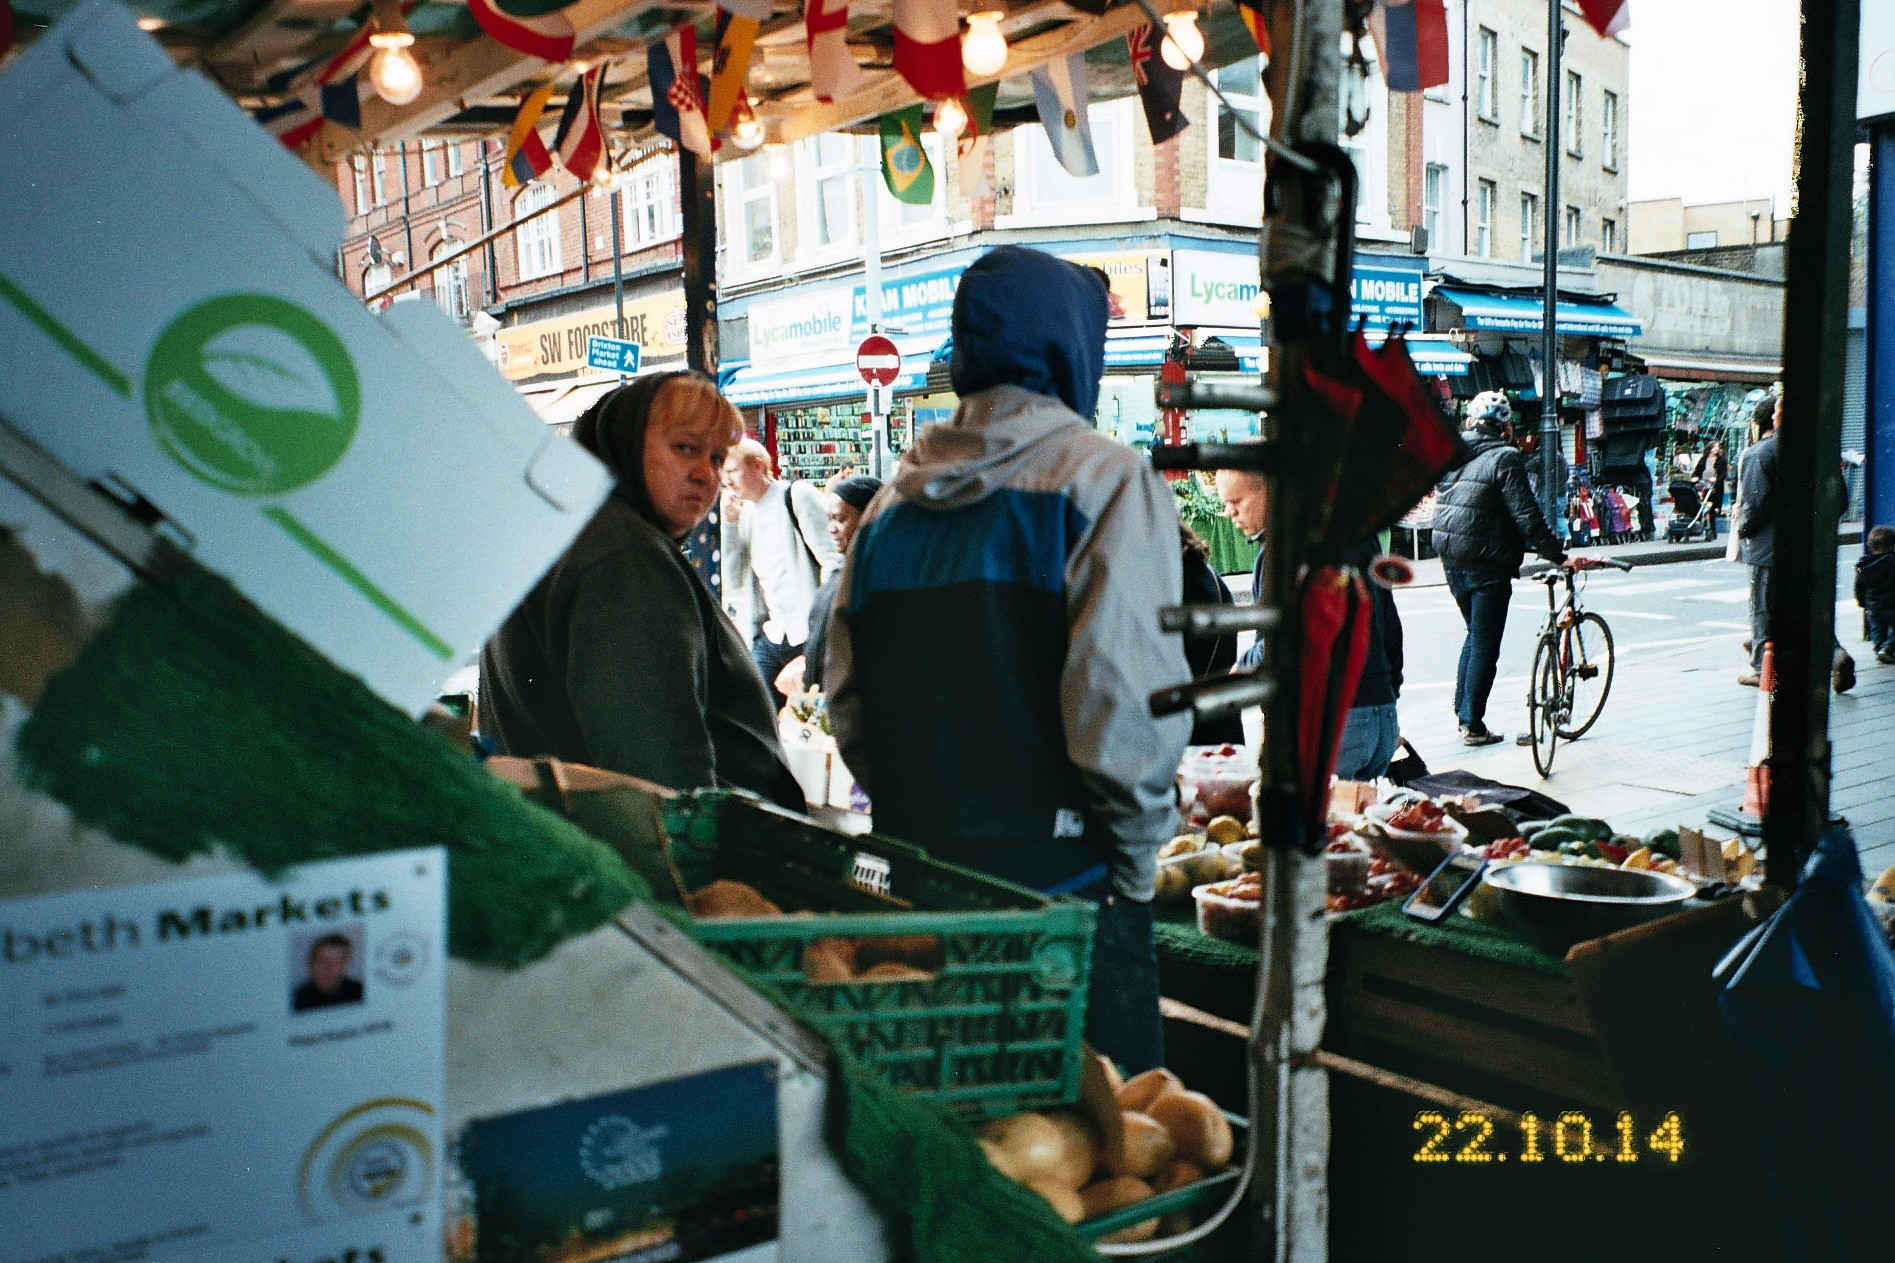 Traders on Pope's Road in Brixton.